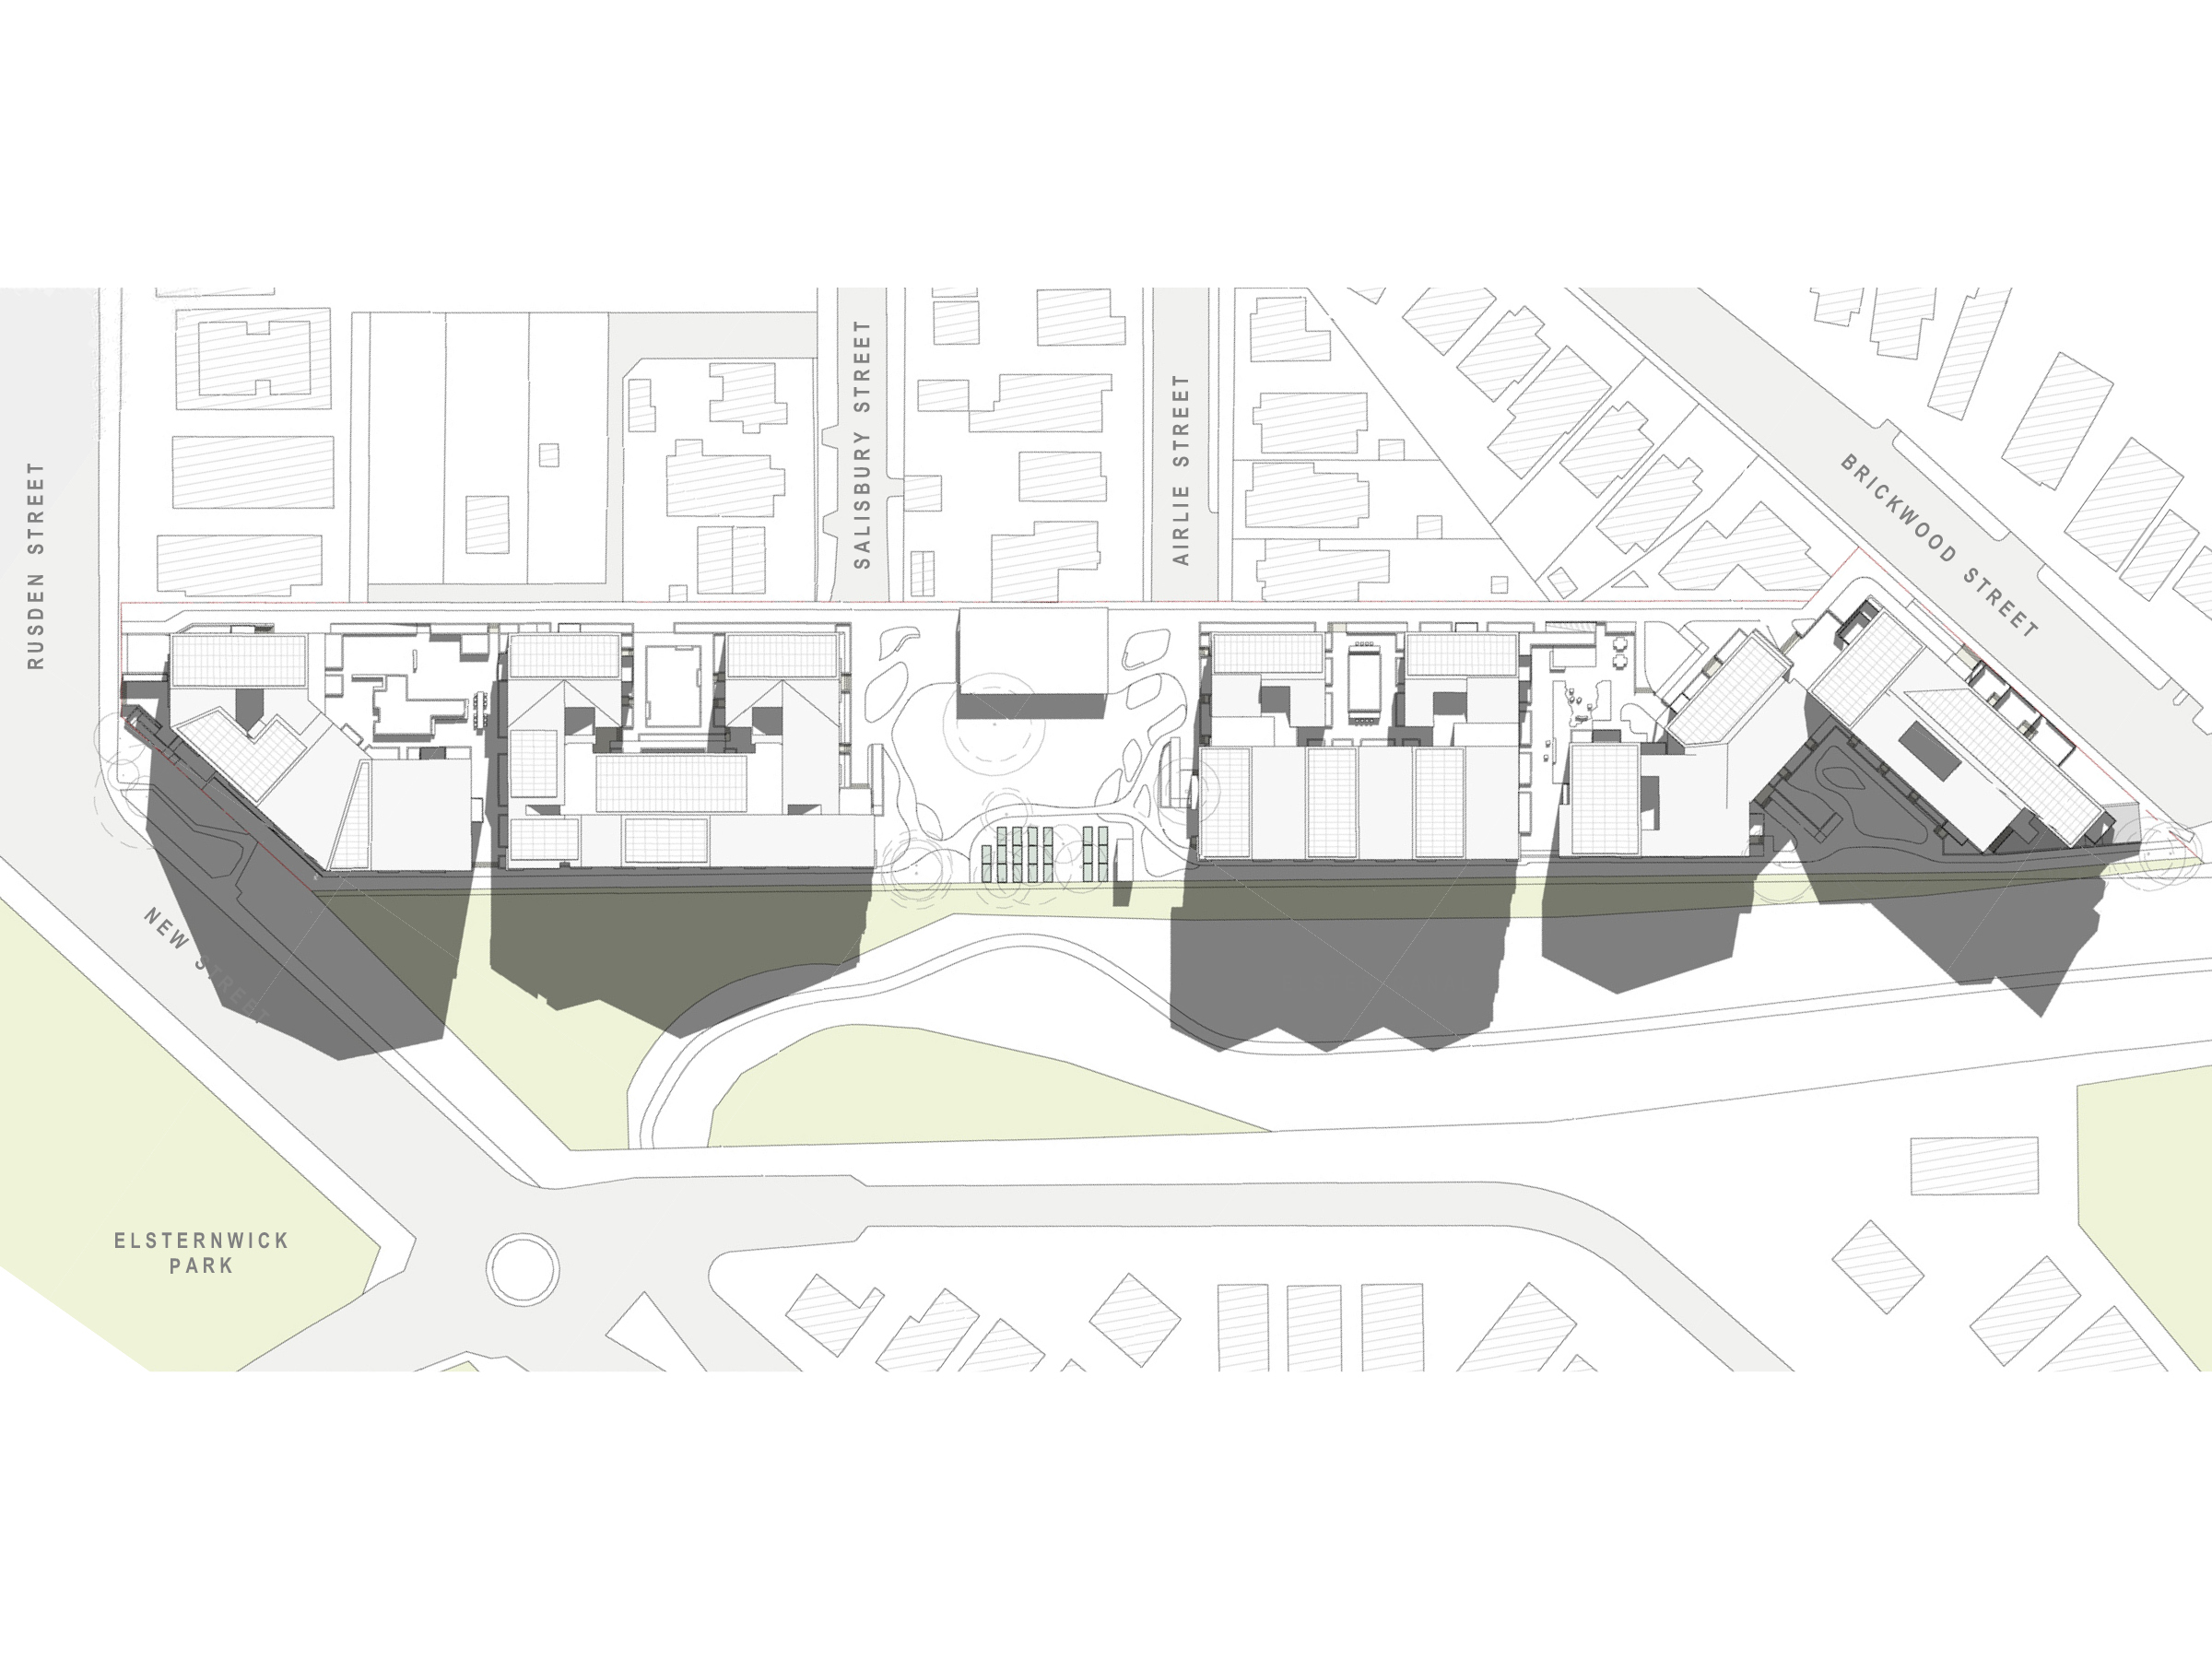 Diagram showing the shadows created by the new development in September at 9am